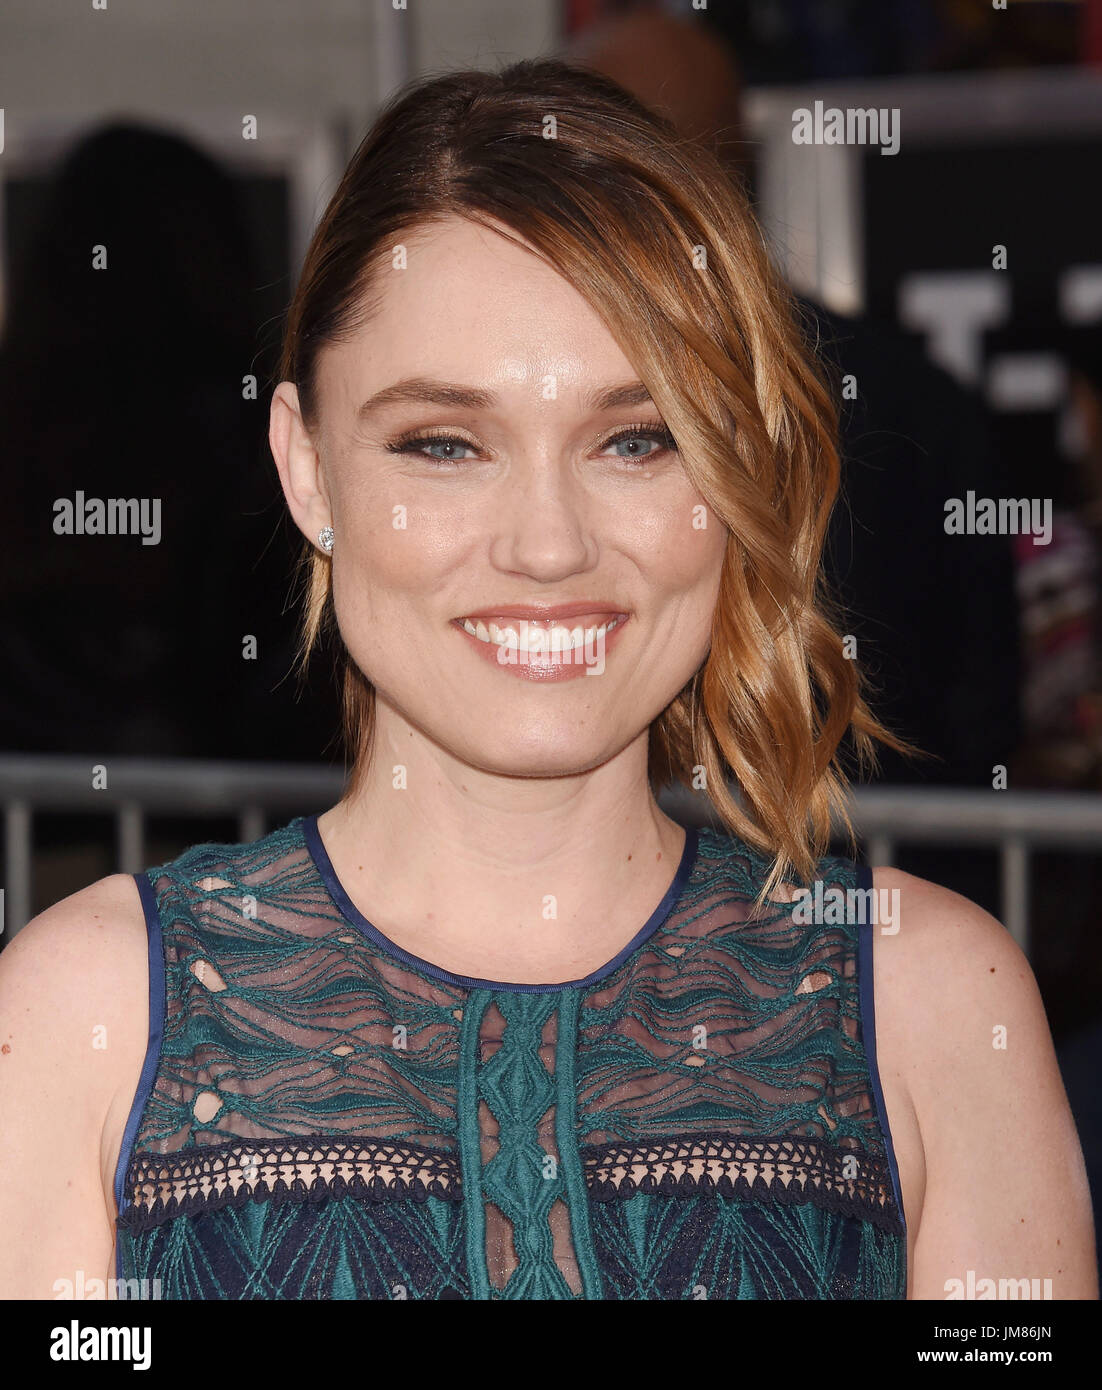 CLARE GRANT US film actress in March 2017. Photo: Jeffrey Mayer - Stock Image